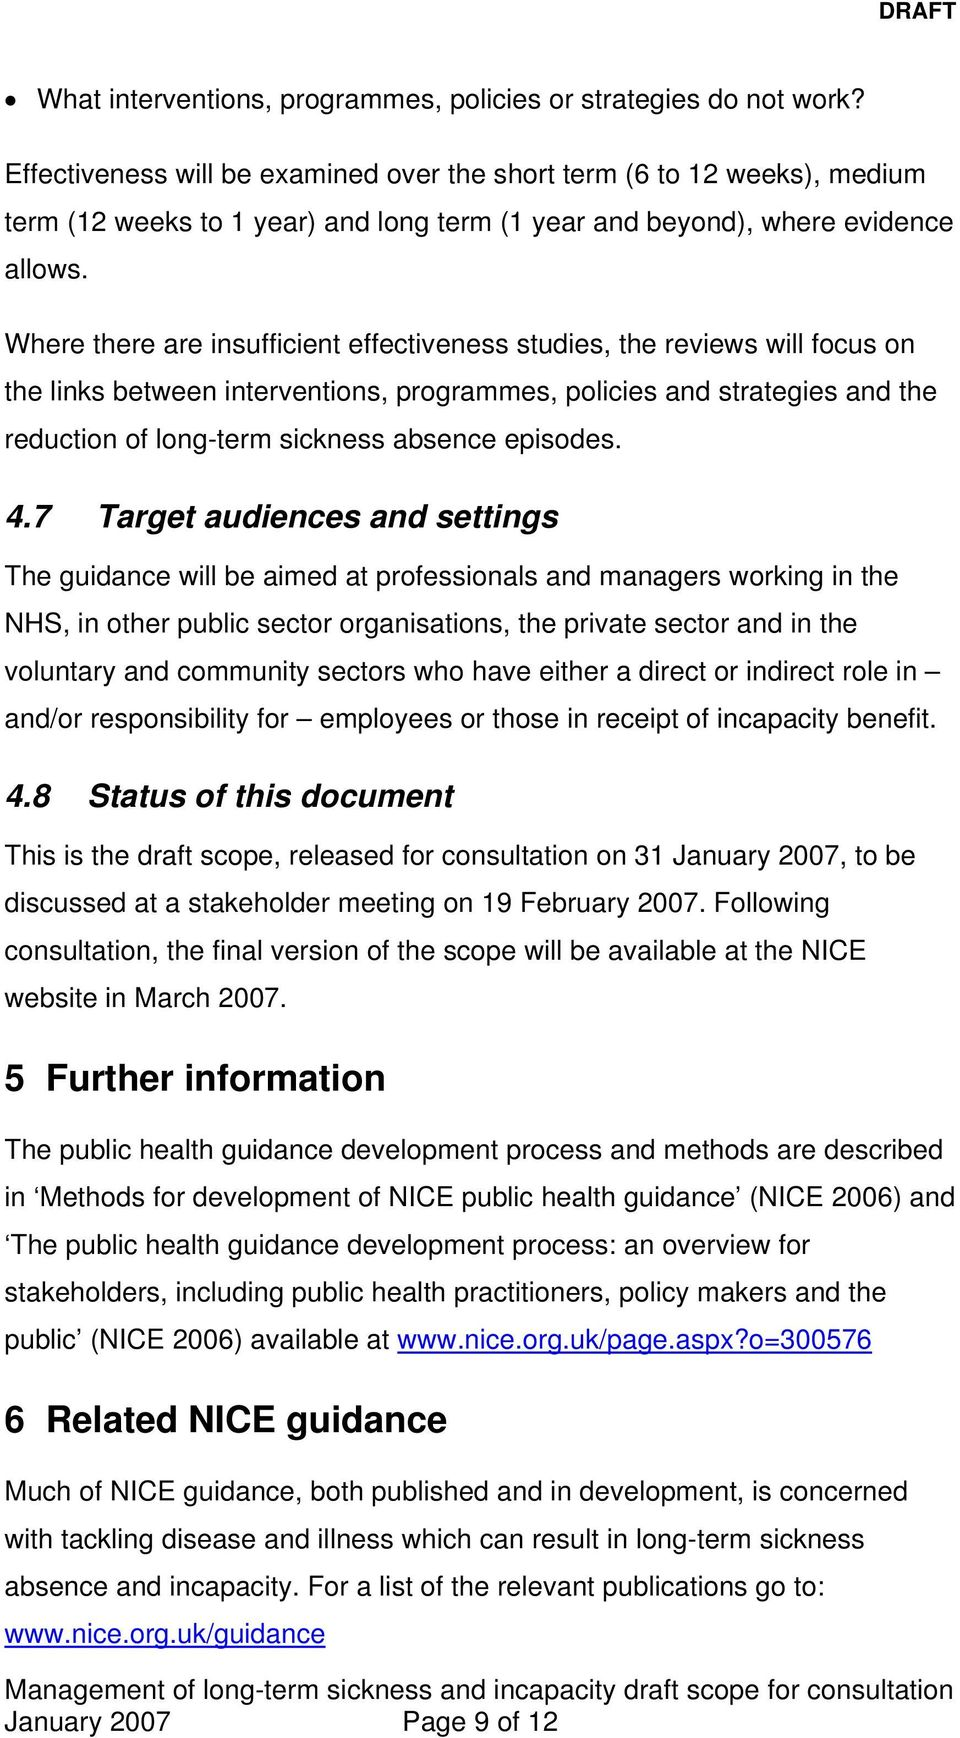 Where there are insufficient effectiveness studies, the reviews will focus on the links between interventions, programmes, policies and strategies and the reduction of long-term sickness absence